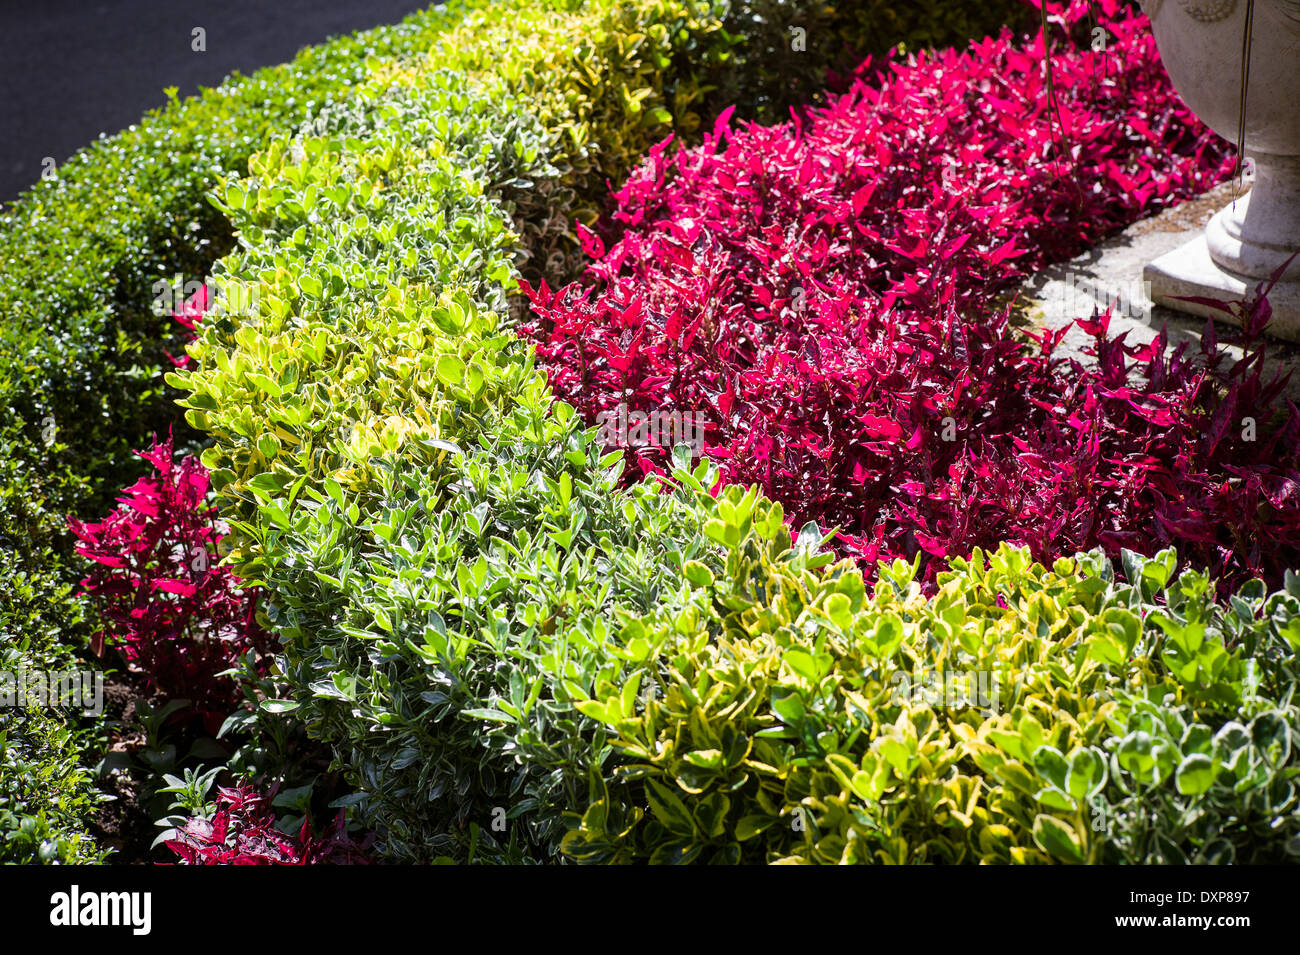 Concentric planting of evergreen shrubs and Iresine bedding plants - Stock Image